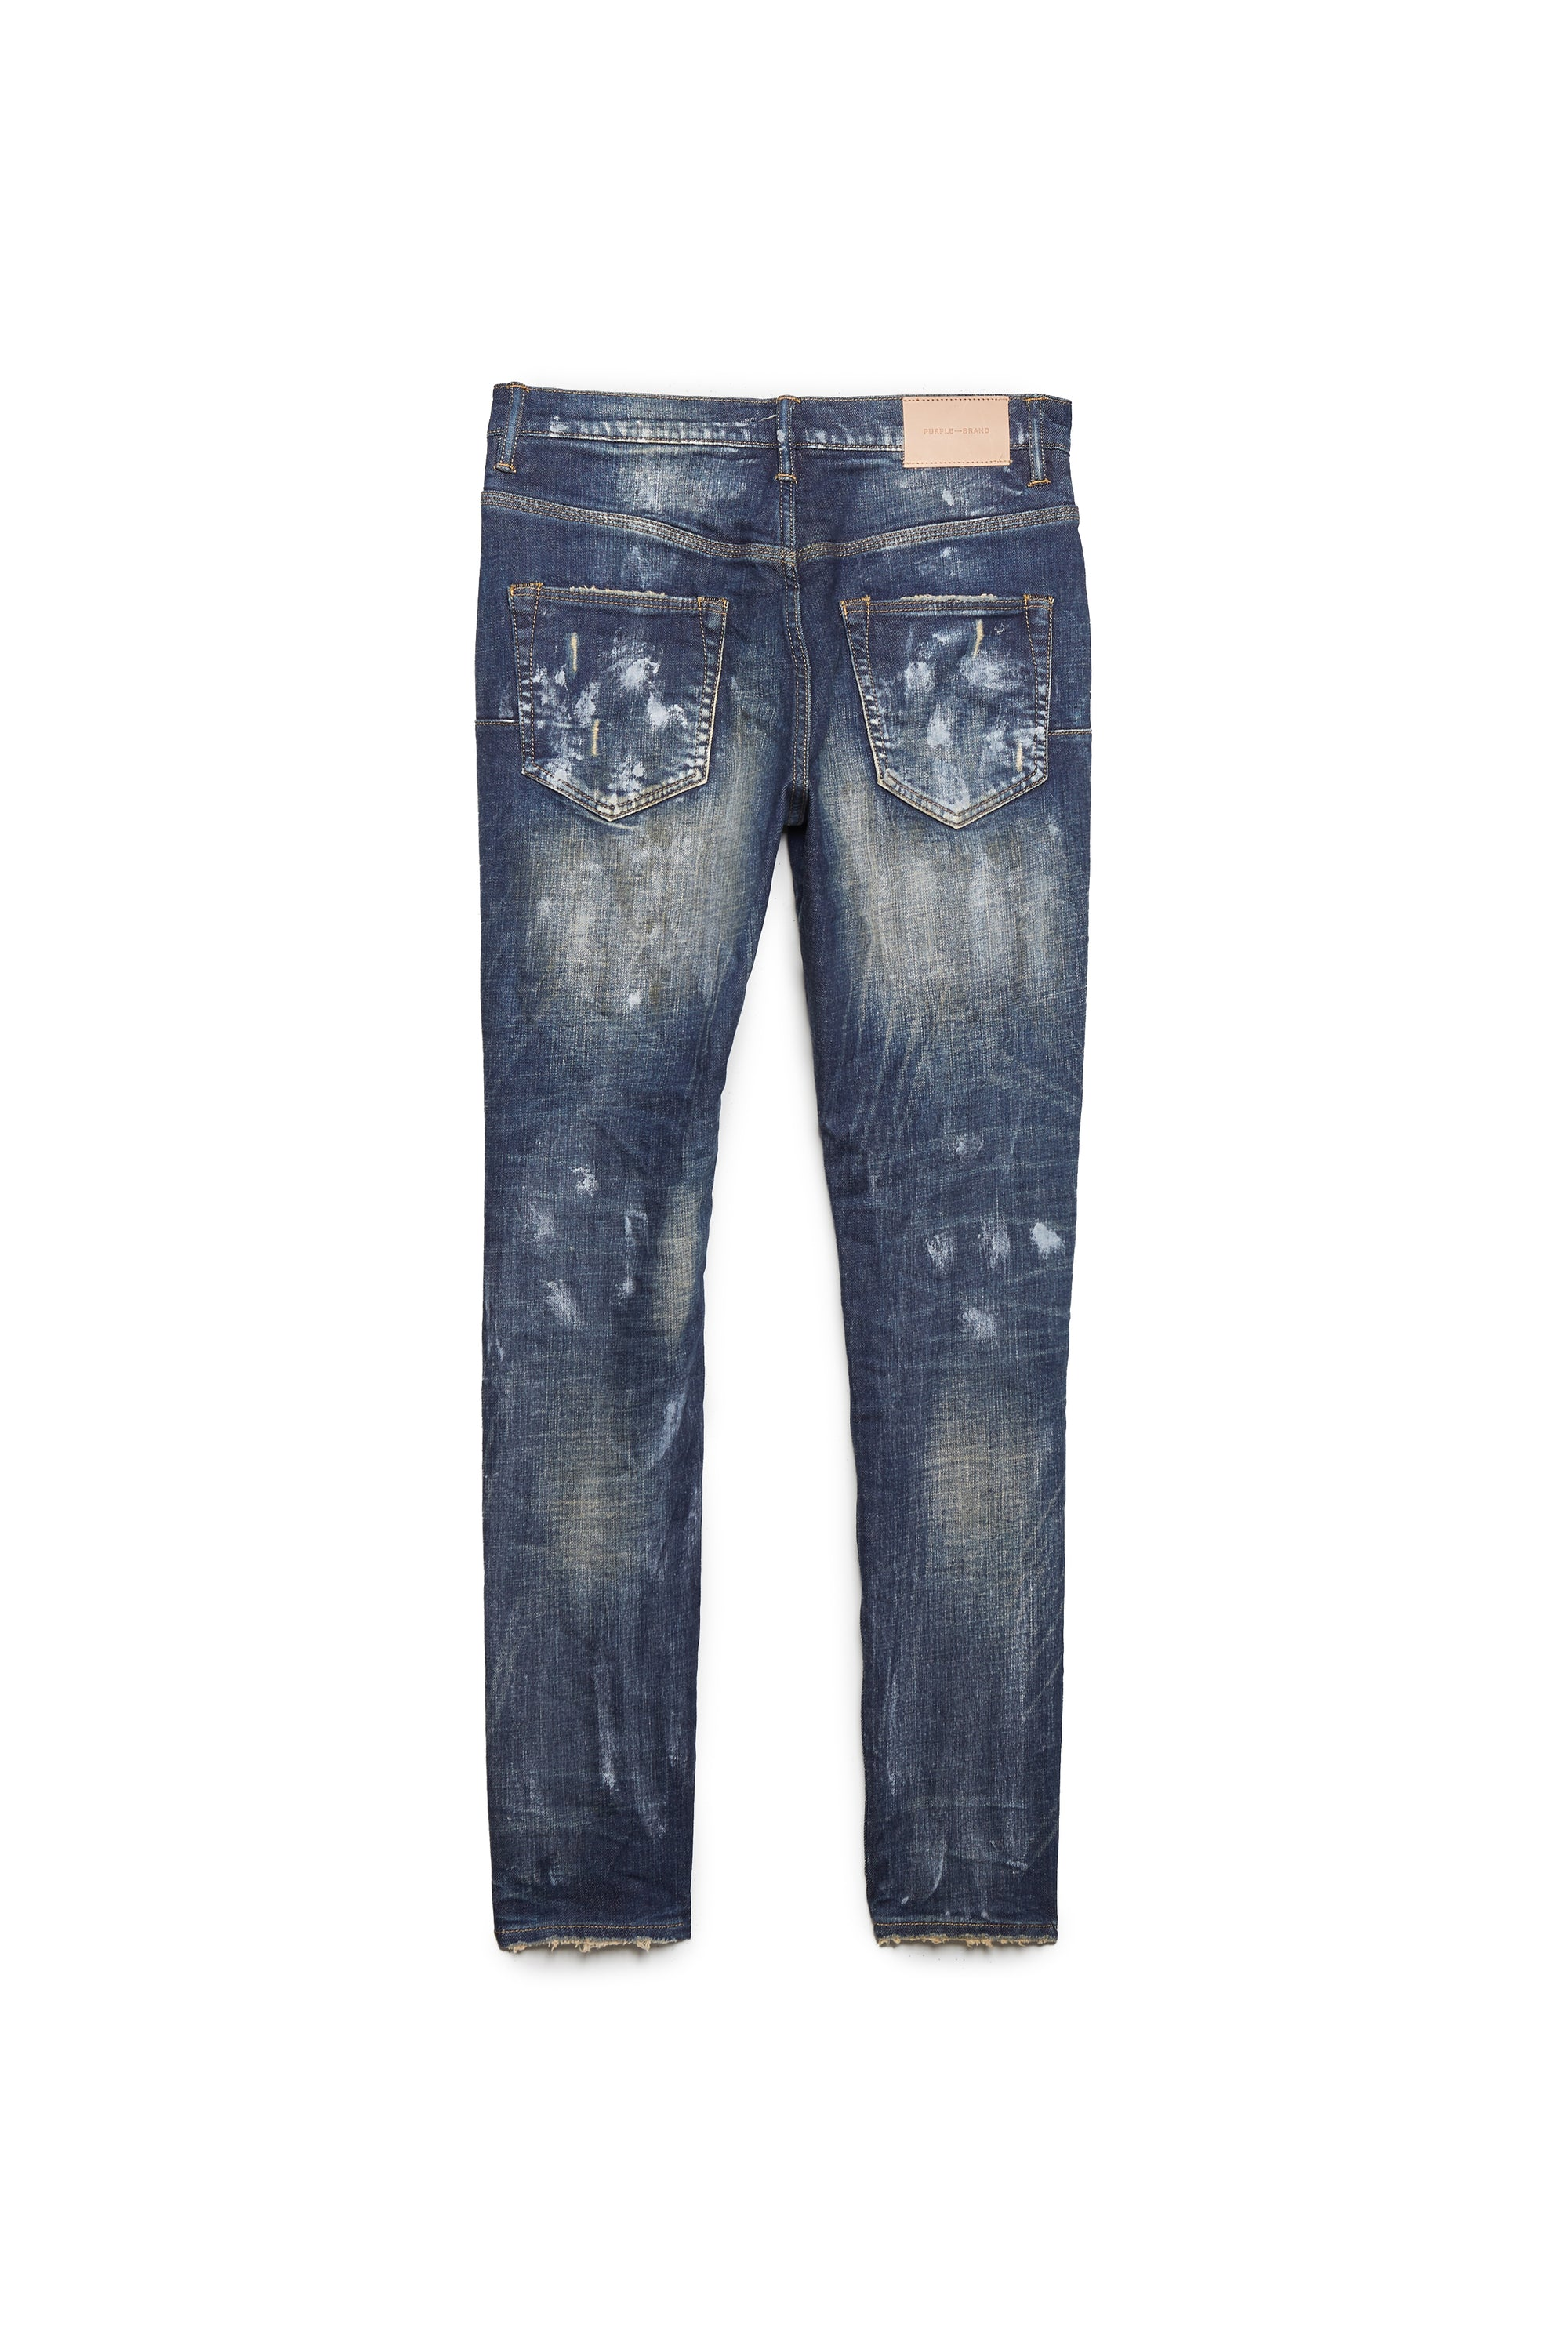 P002 MID RISE WITH TAPERED LEG - Vintage Dirty Wash